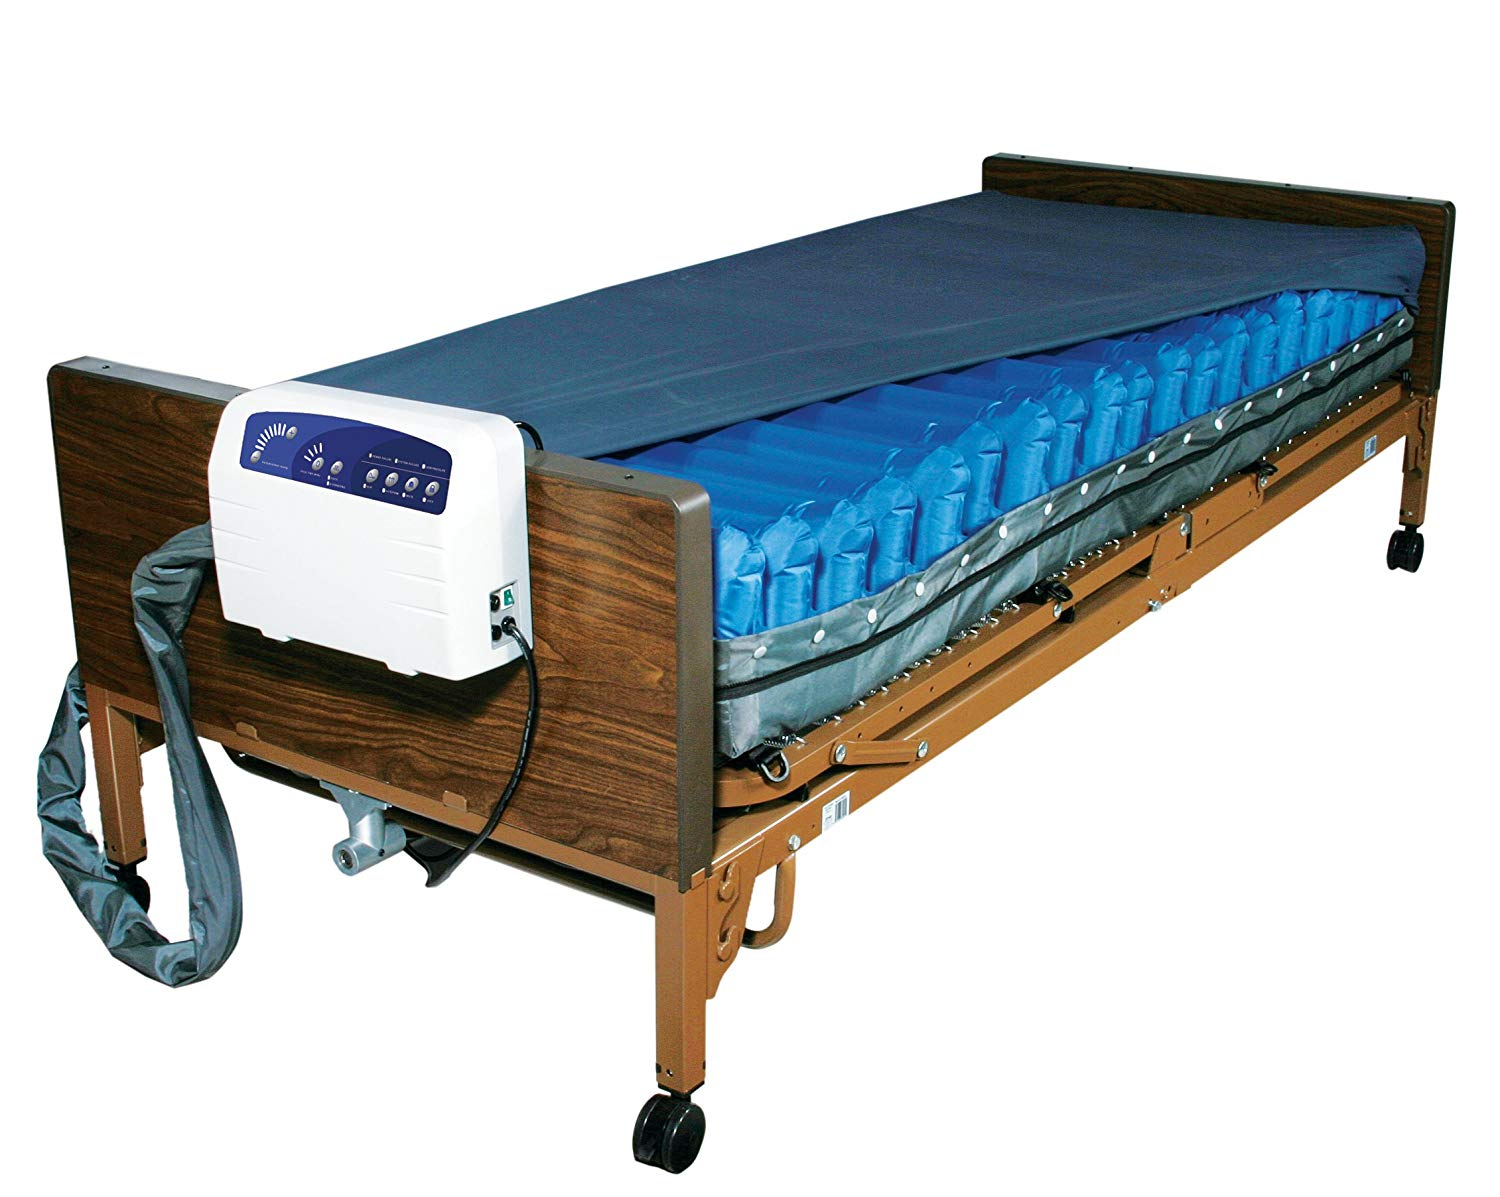 Miraculous Hospital Beds For Home Top Brands And Buying Guide For 2019 Home Interior And Landscaping Mentranervesignezvosmurscom